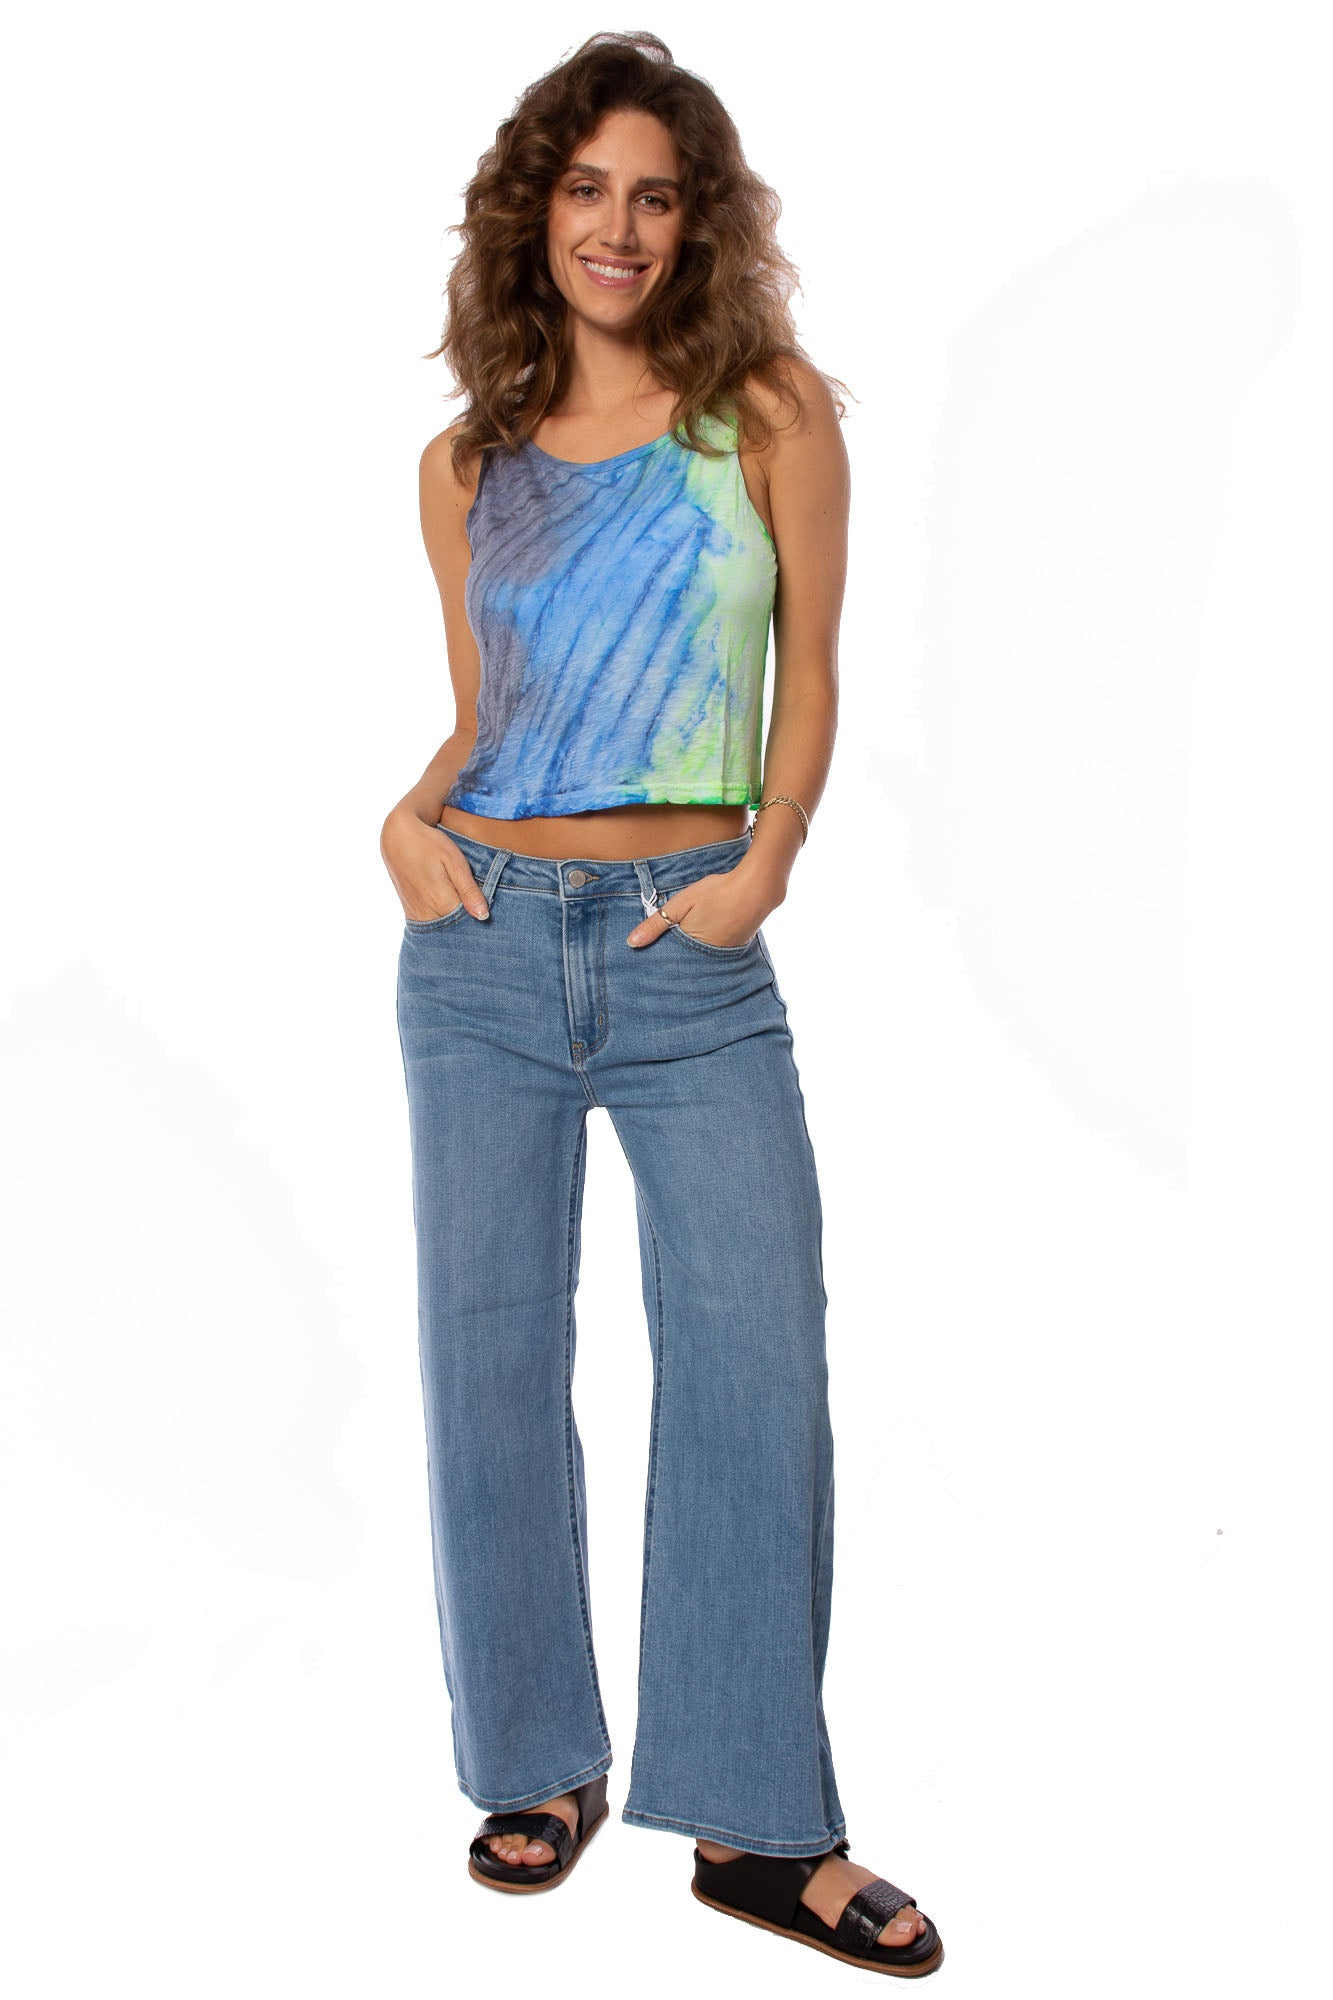 DL1961 - Hepburn Wide Leg Pants (12763, Black)